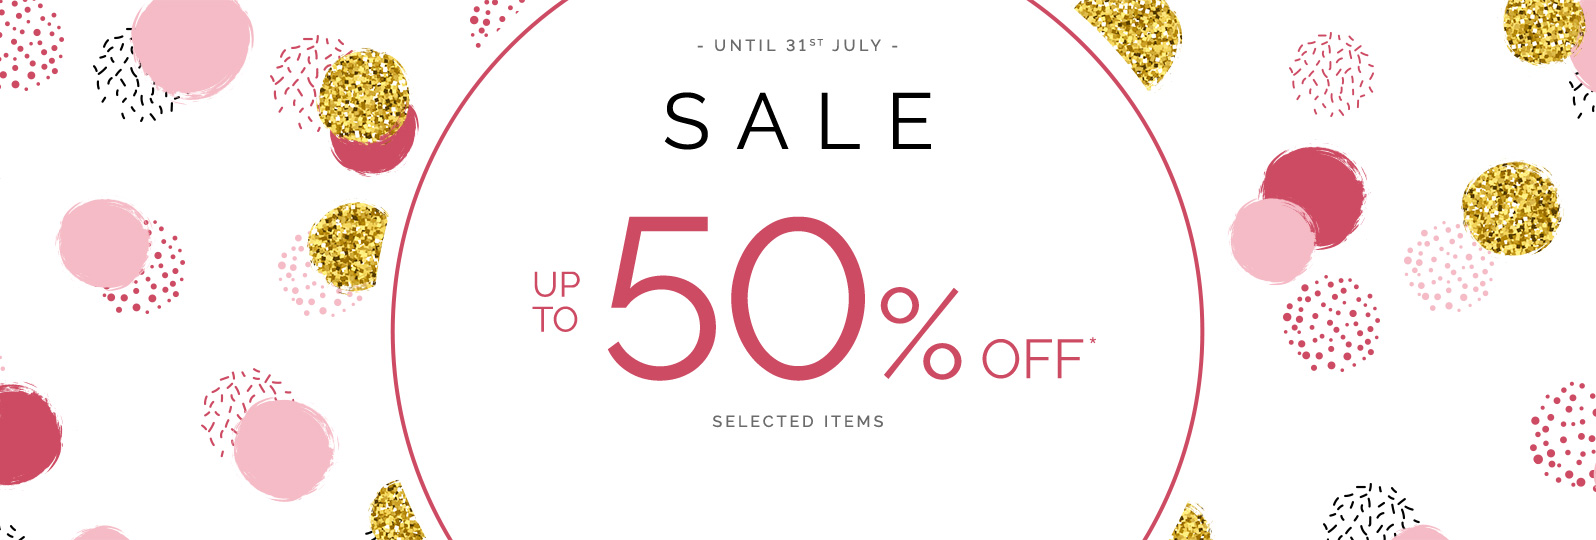 Sale - Up to 50% off* selected items